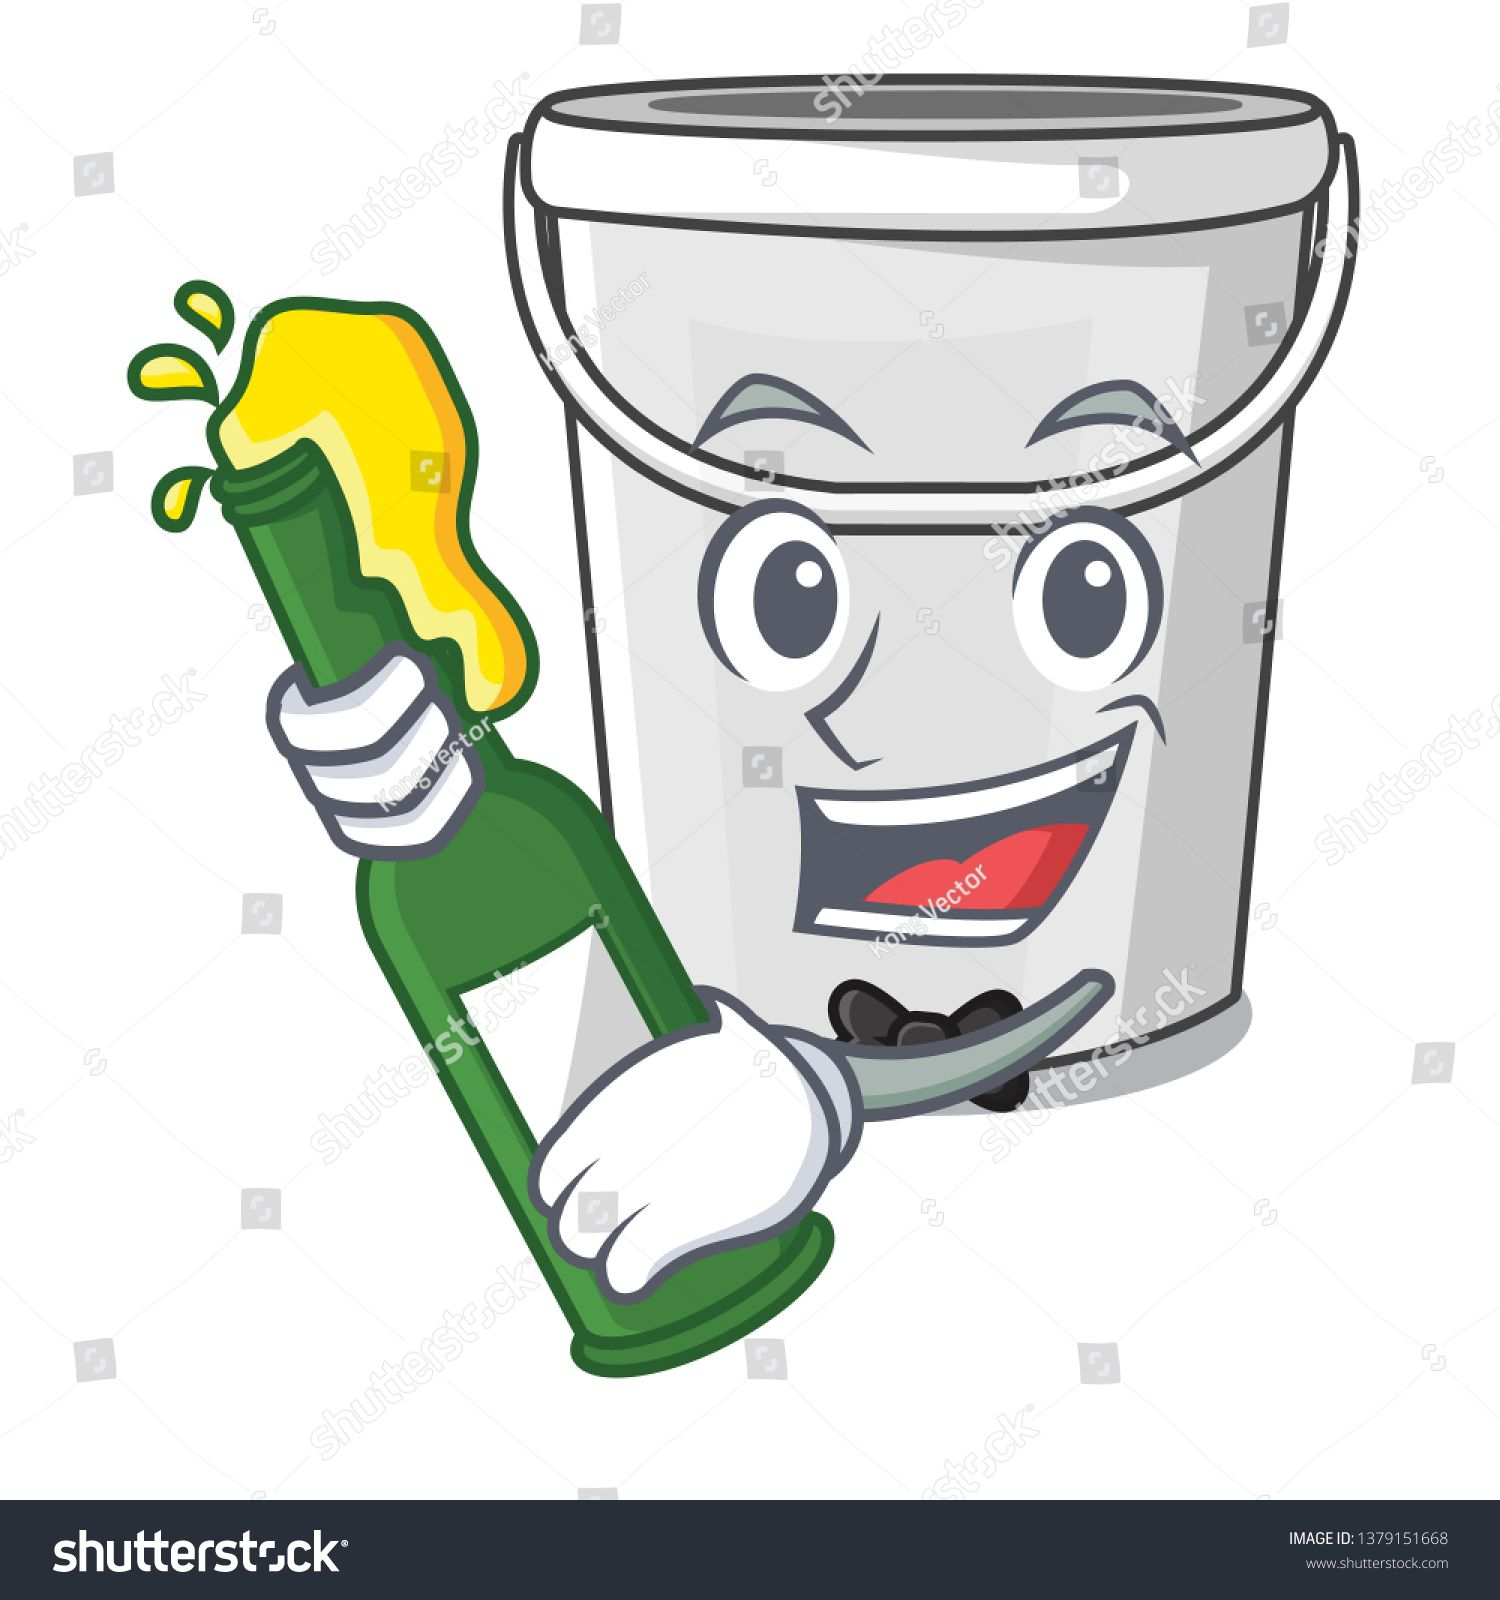 With Beer Plastic Tube Bucket In The Mascot Ad Affiliate Plastic Beer Tube Mascot In 2020 Mascot Photo Art Royalty Free Stock Photos